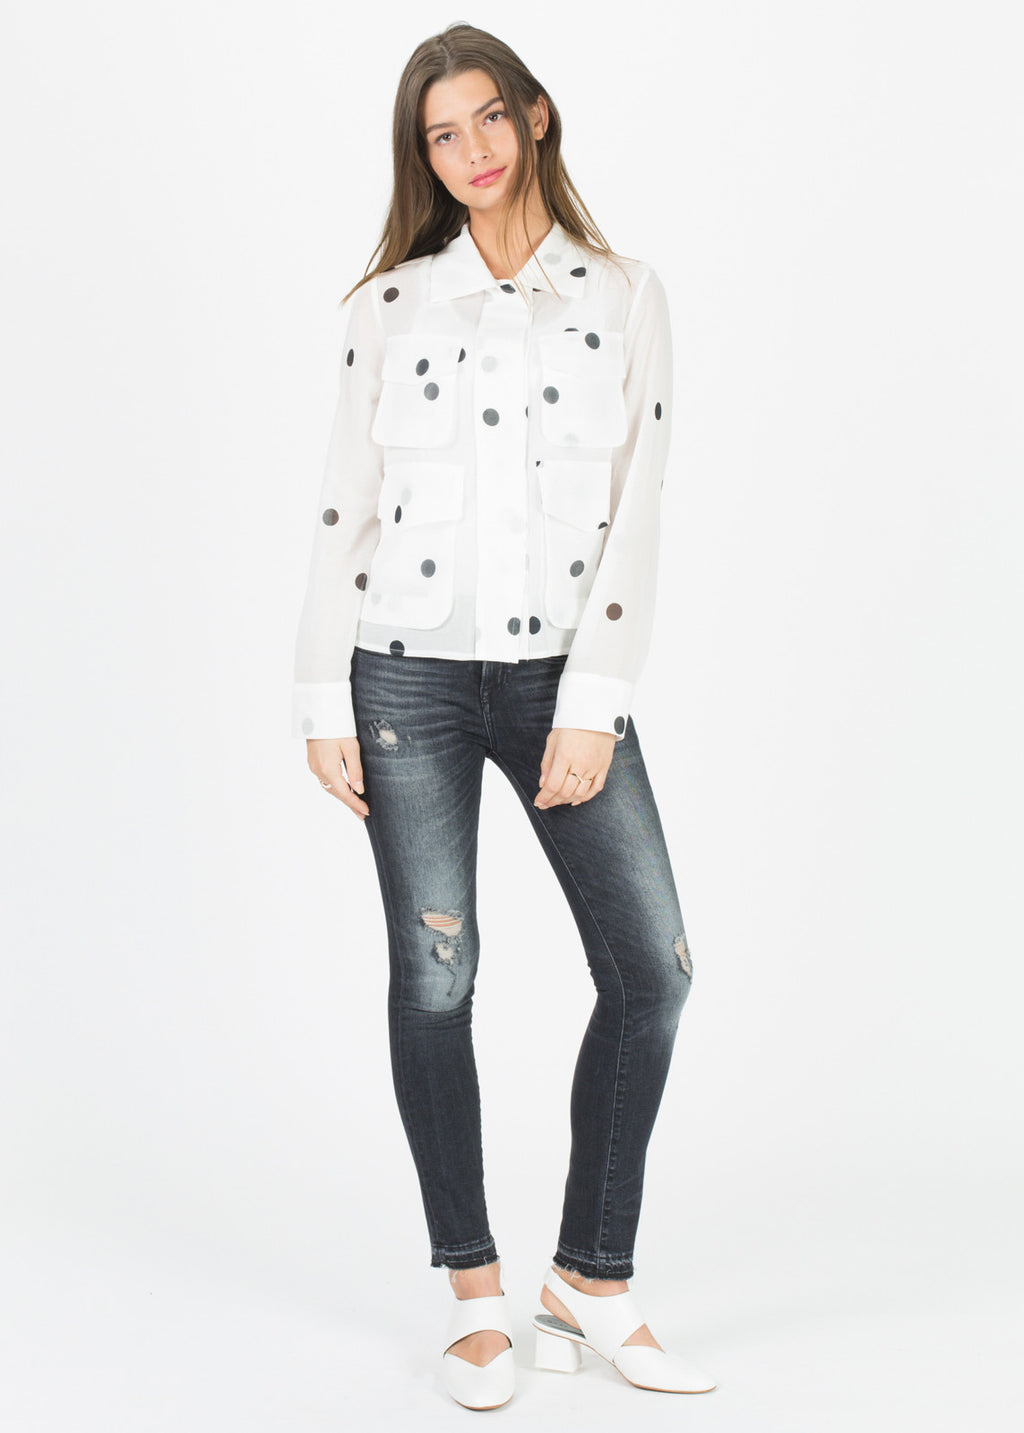 Sheer Four Pocket Shirt Jacket